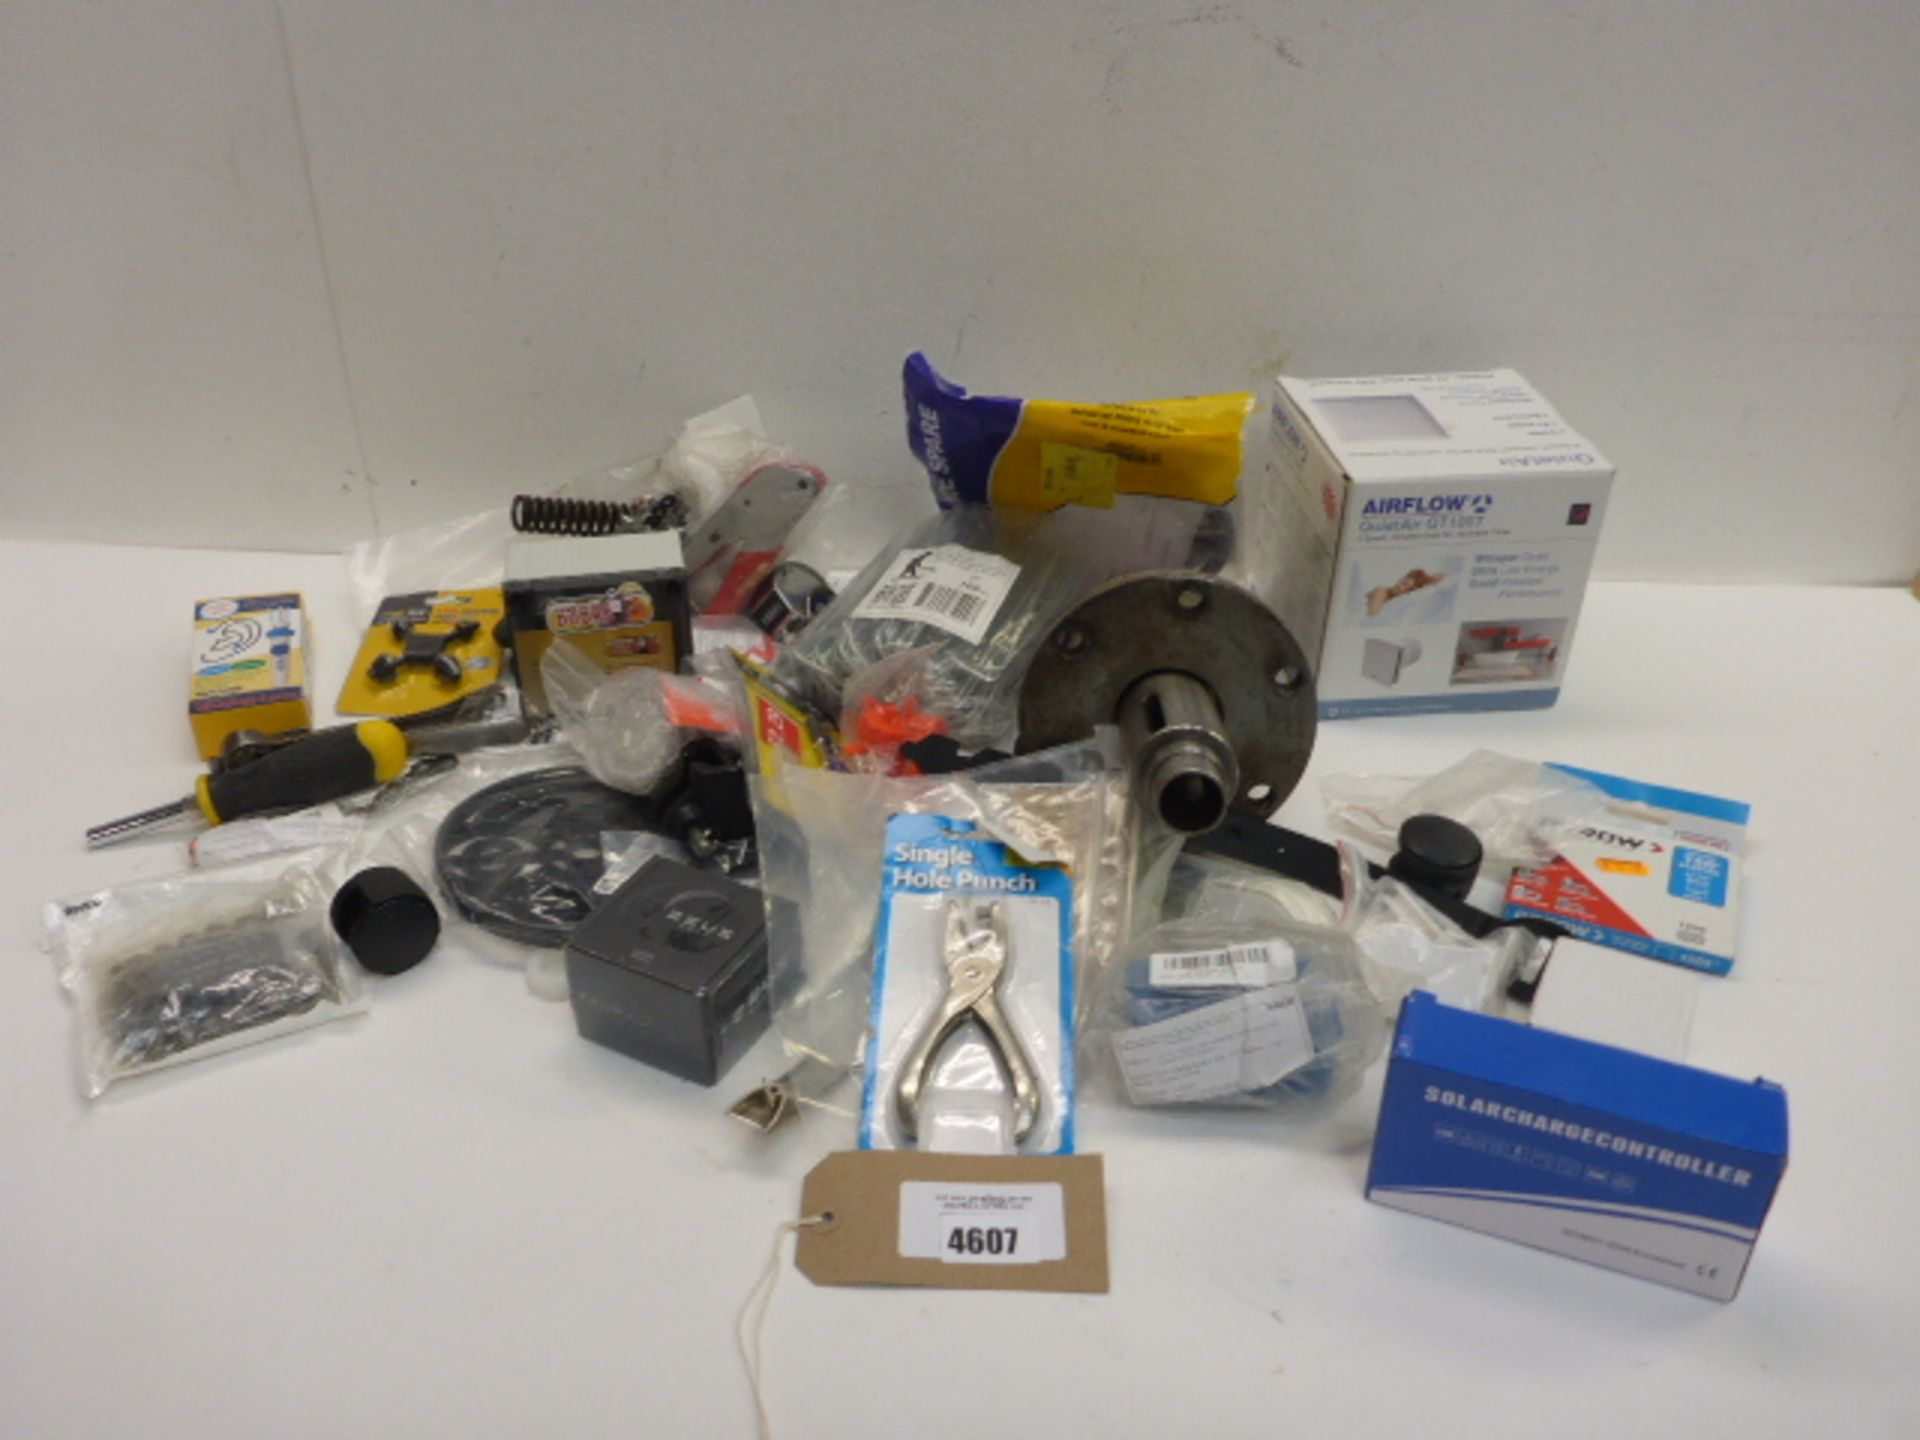 Lot 4607 - Large gear ring, air flow fan, arrow staples, ground pegs, Zeus bolt, small quantity of tools, solar